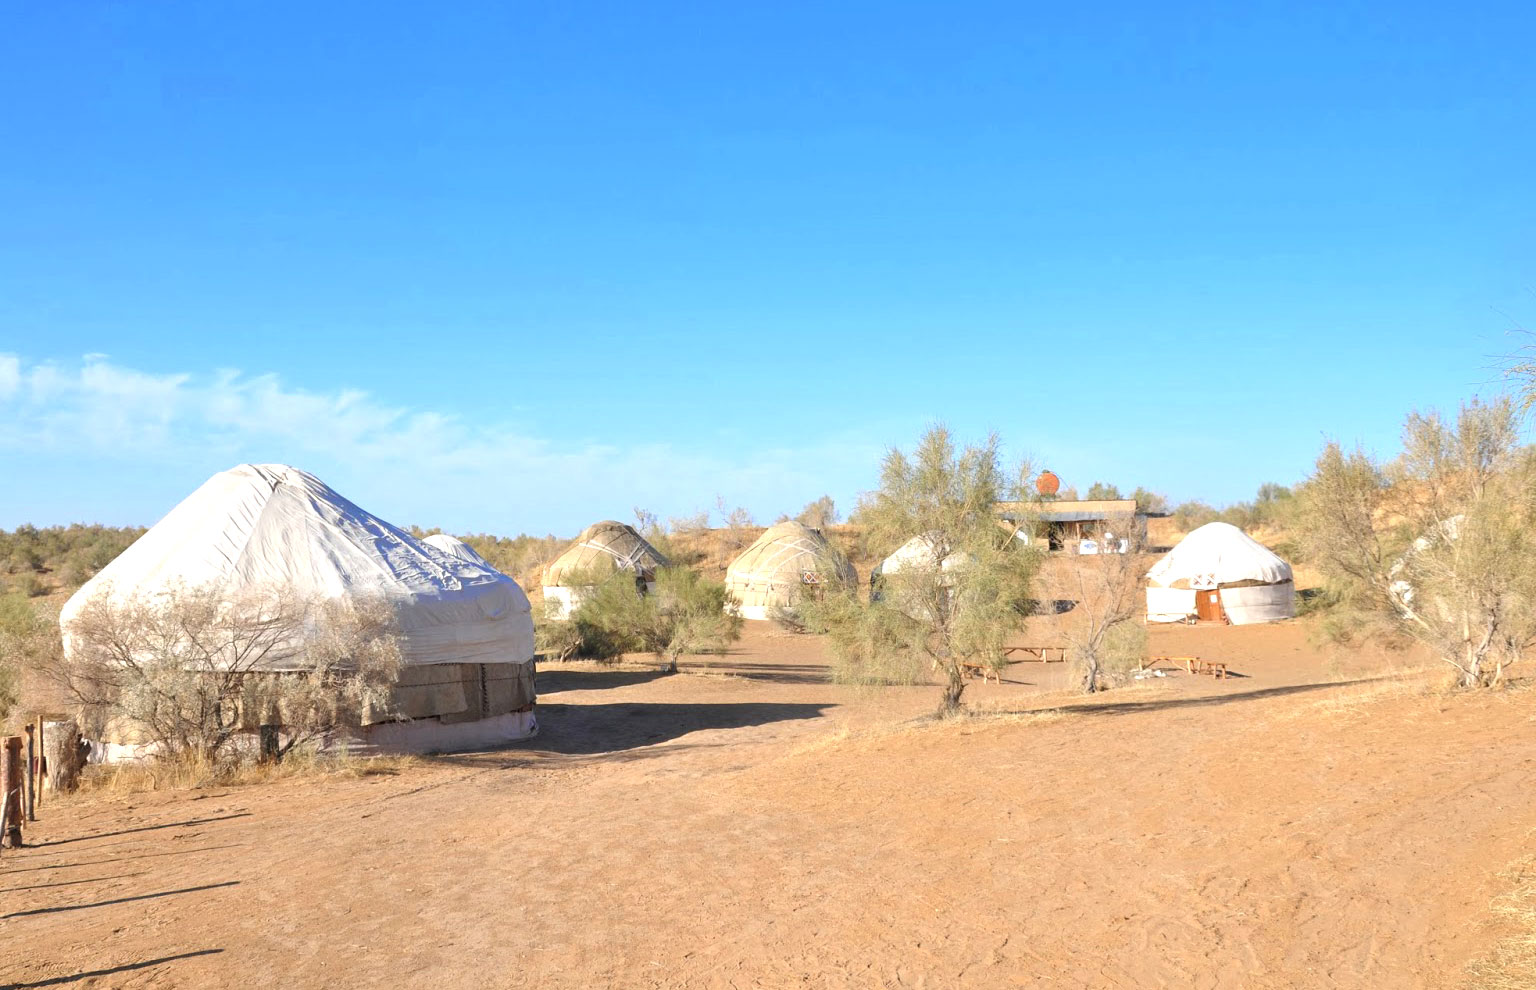 Tour to Desert Yurt Camp – 2 days